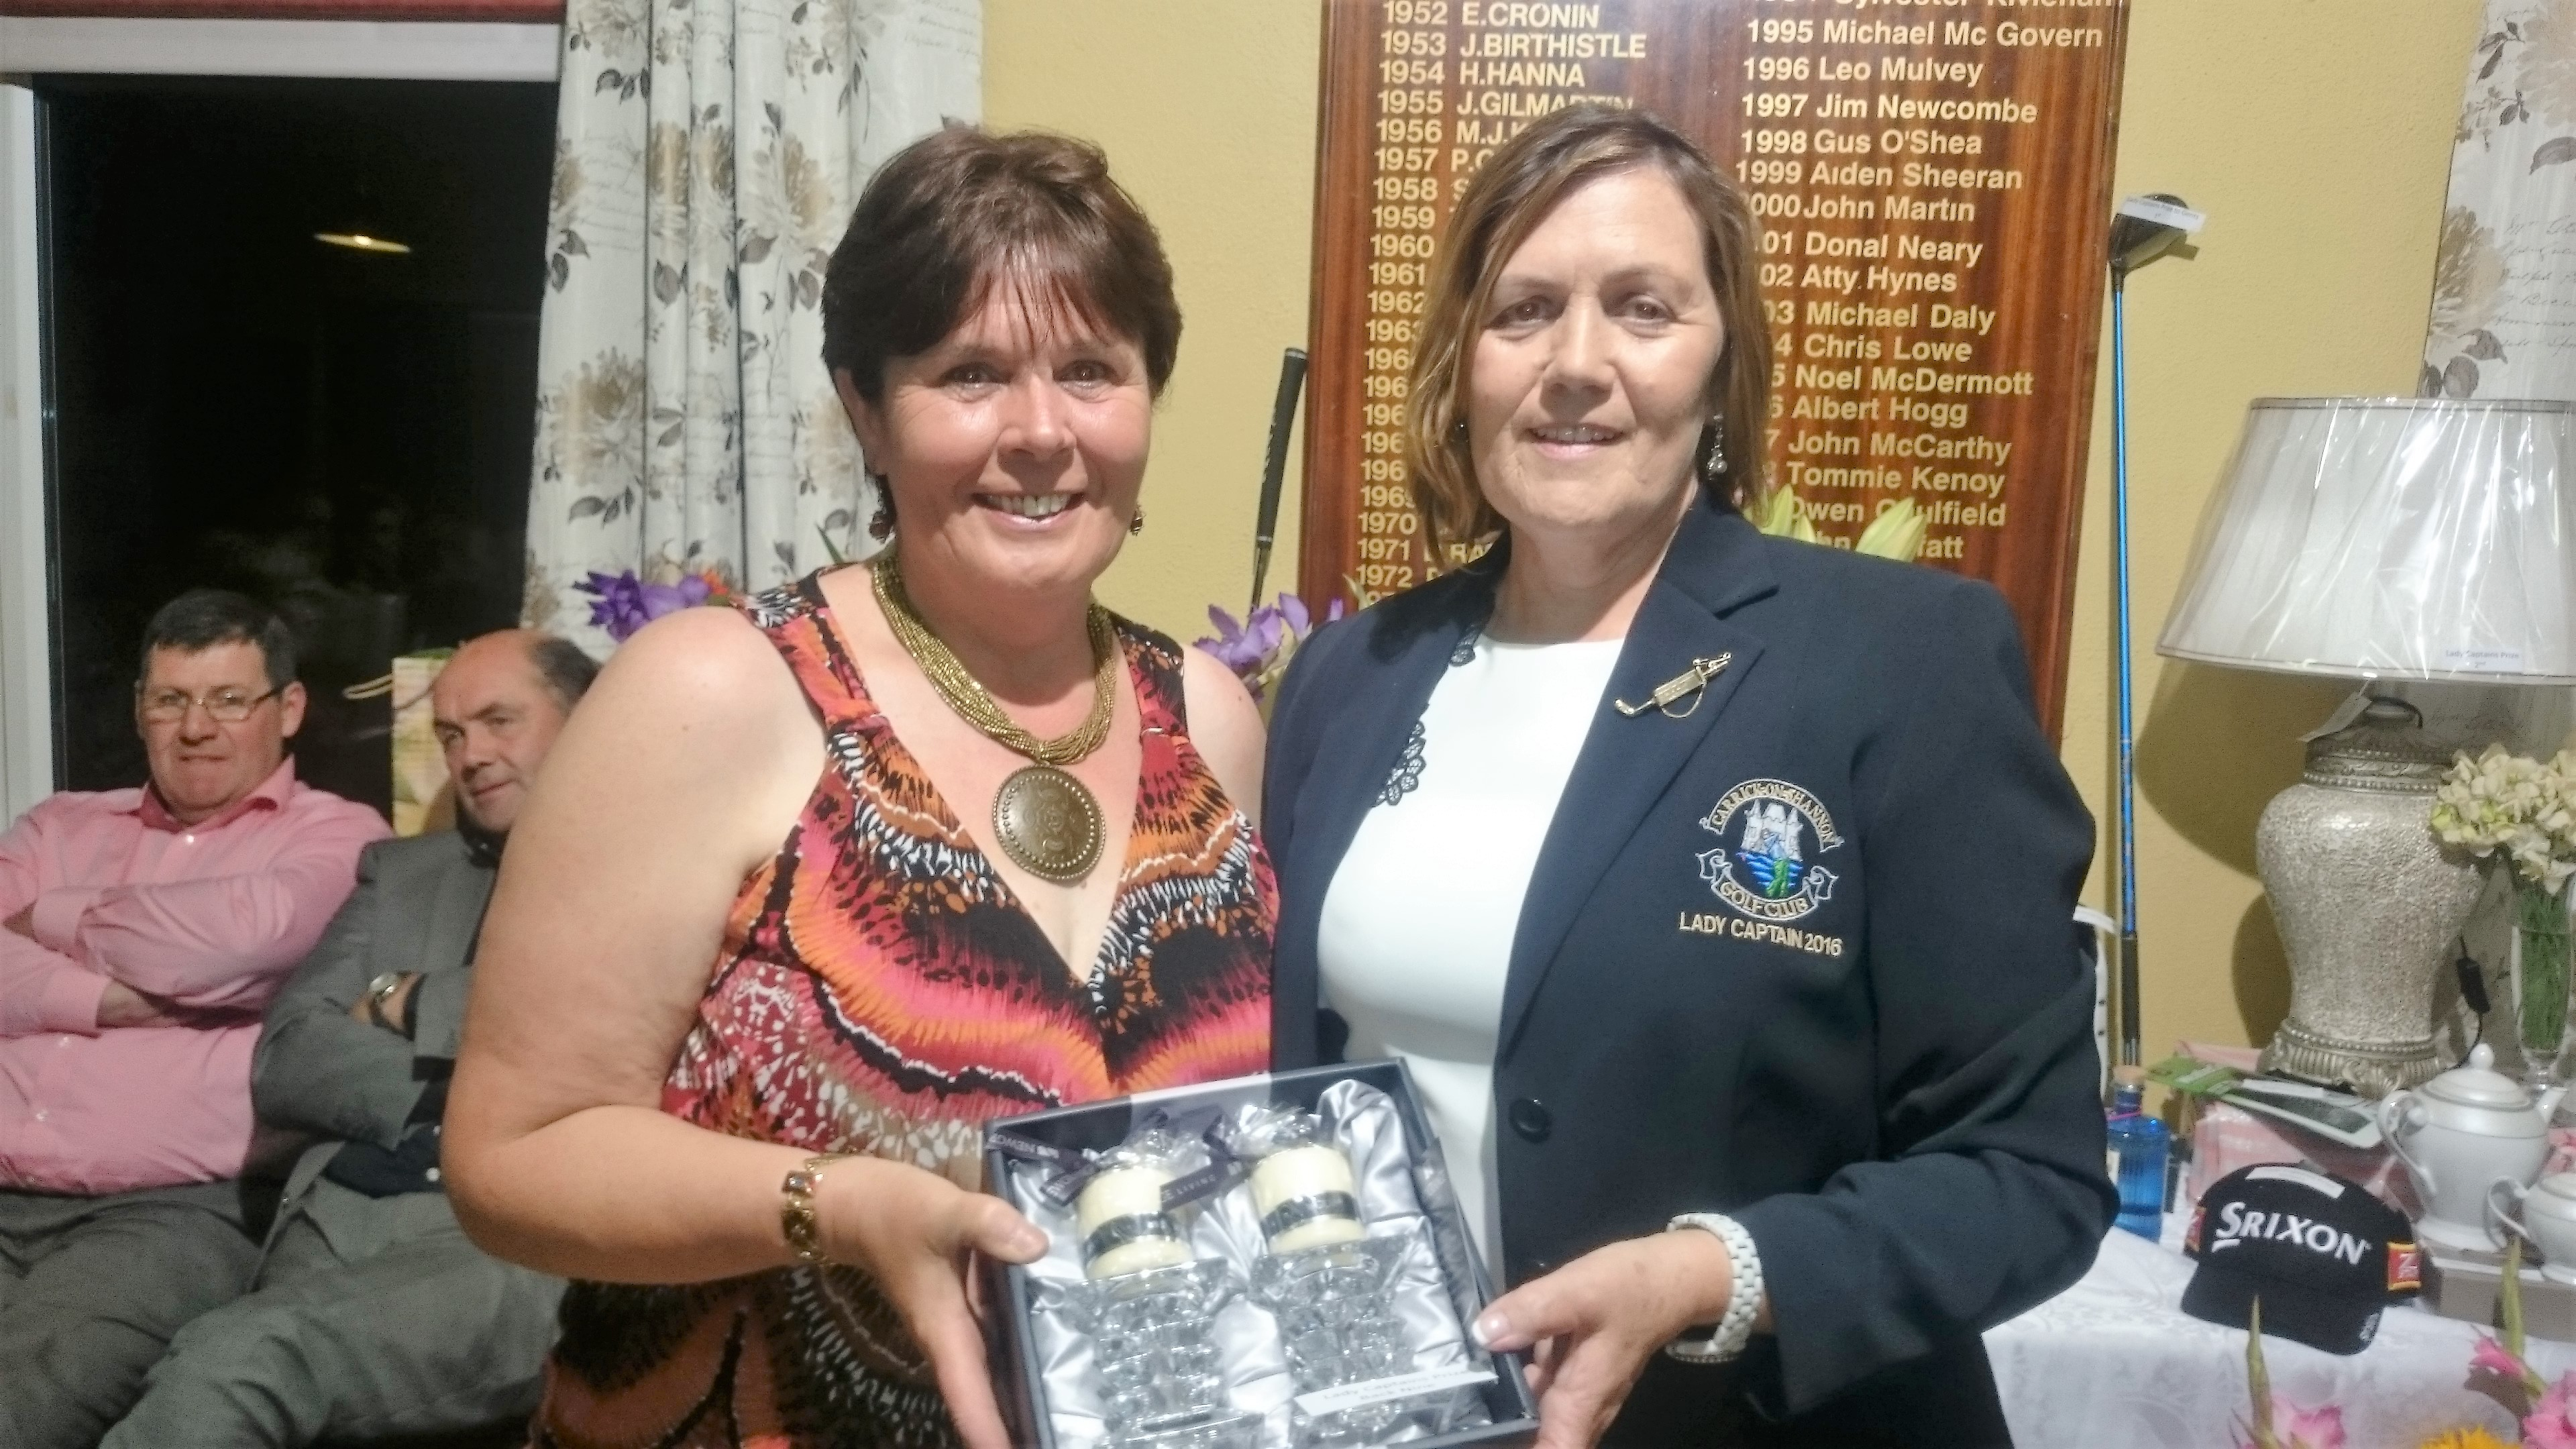 LADY CAPTAINS DAY: Brenda Kelly(Back 9), Lady Captain Noeleen Moffatt